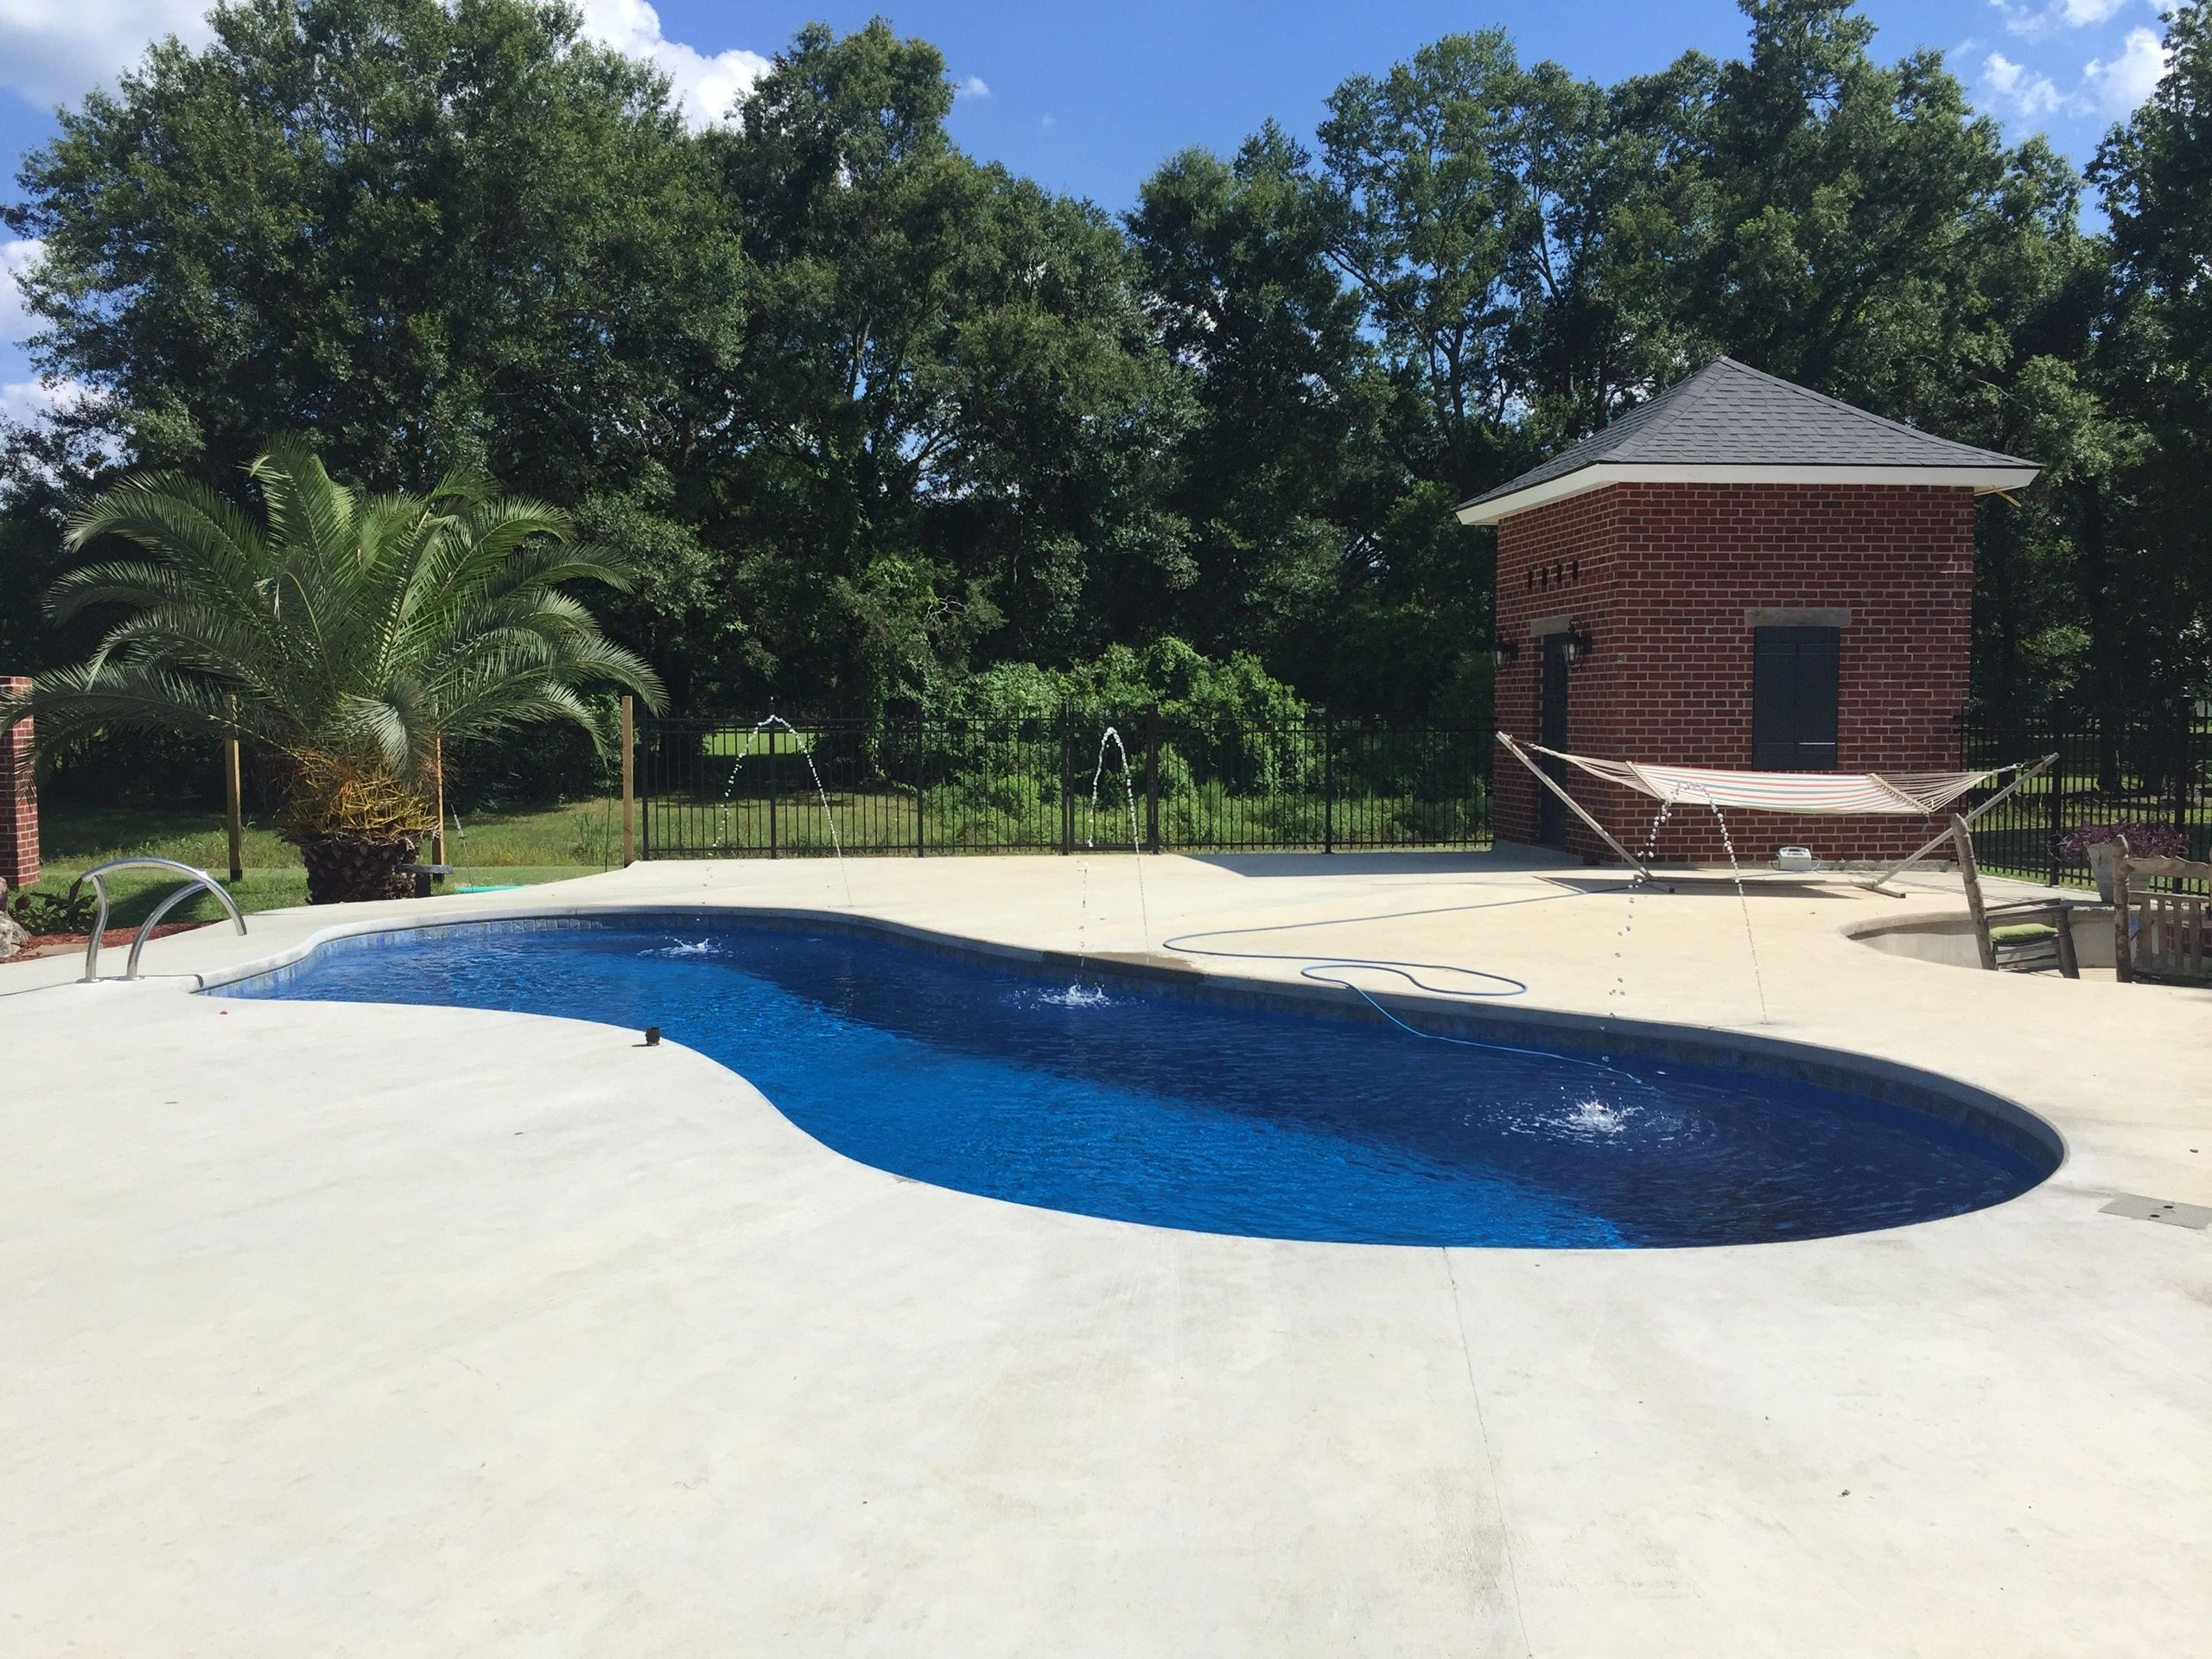 Central pools inc fiberglass pools swimming pools for Homes for sale in baton rouge with swimming pools